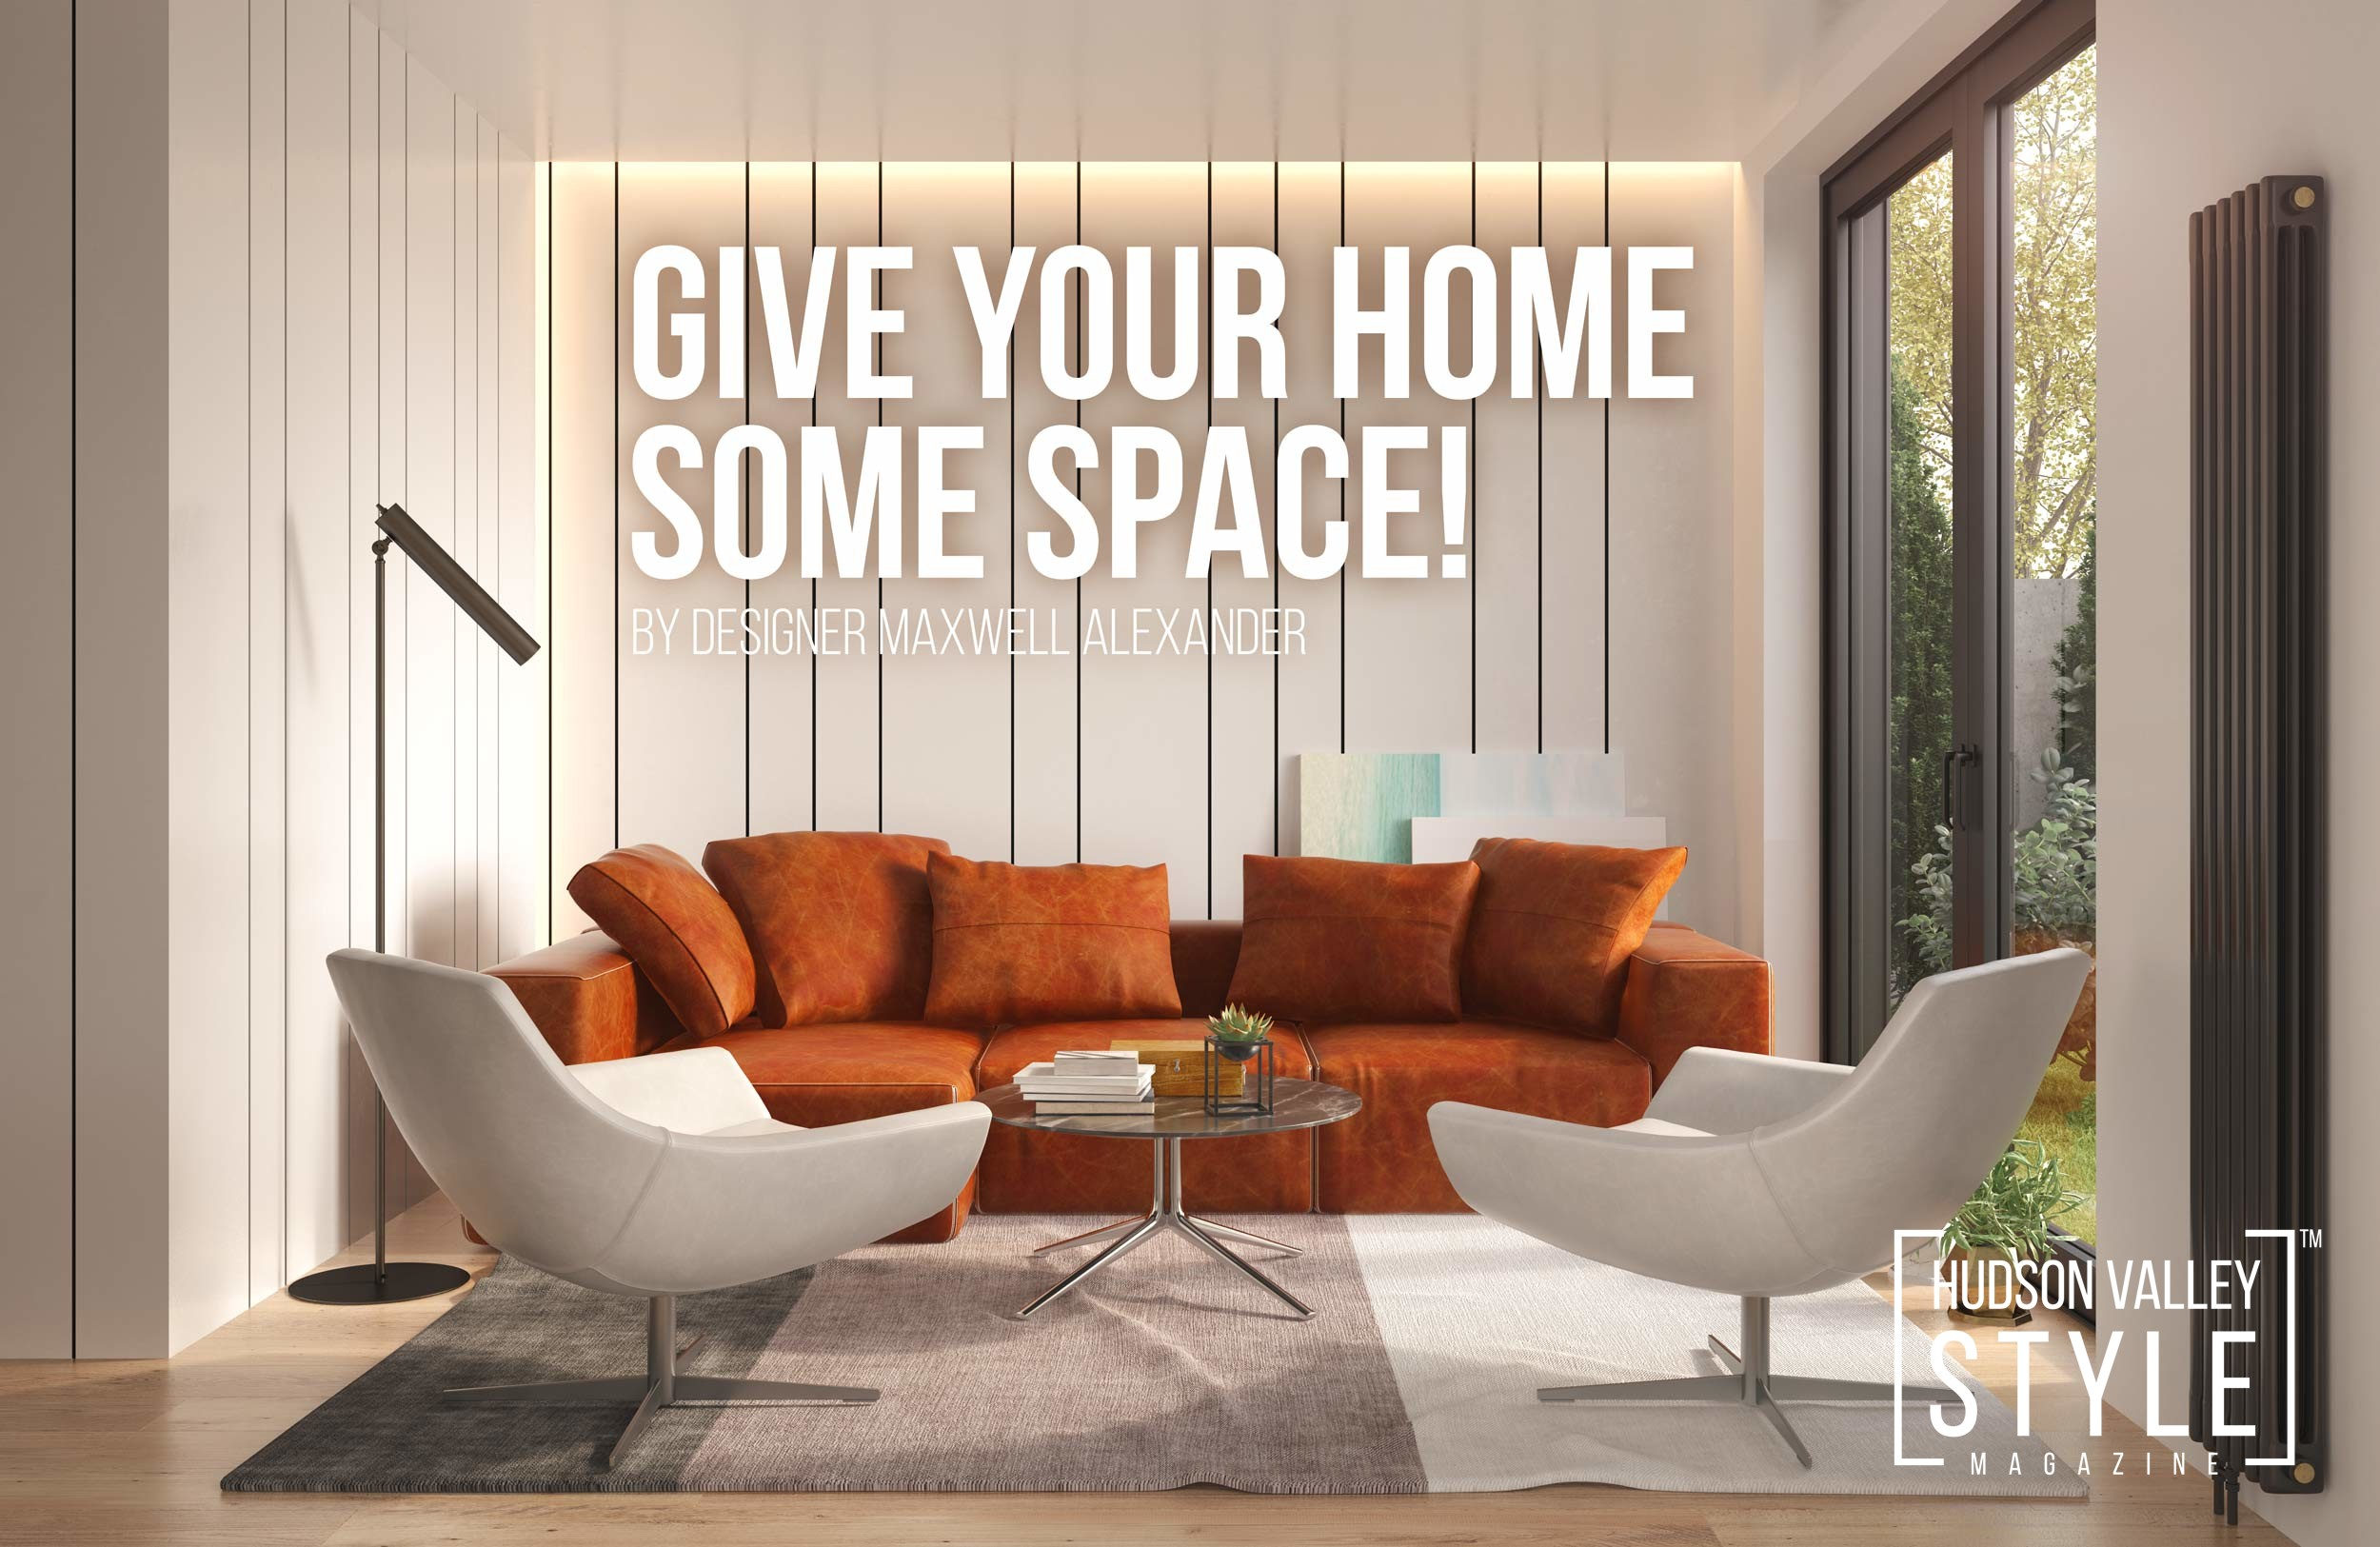 Give Your Home Some Space by Designer Maxwell L. Alexander